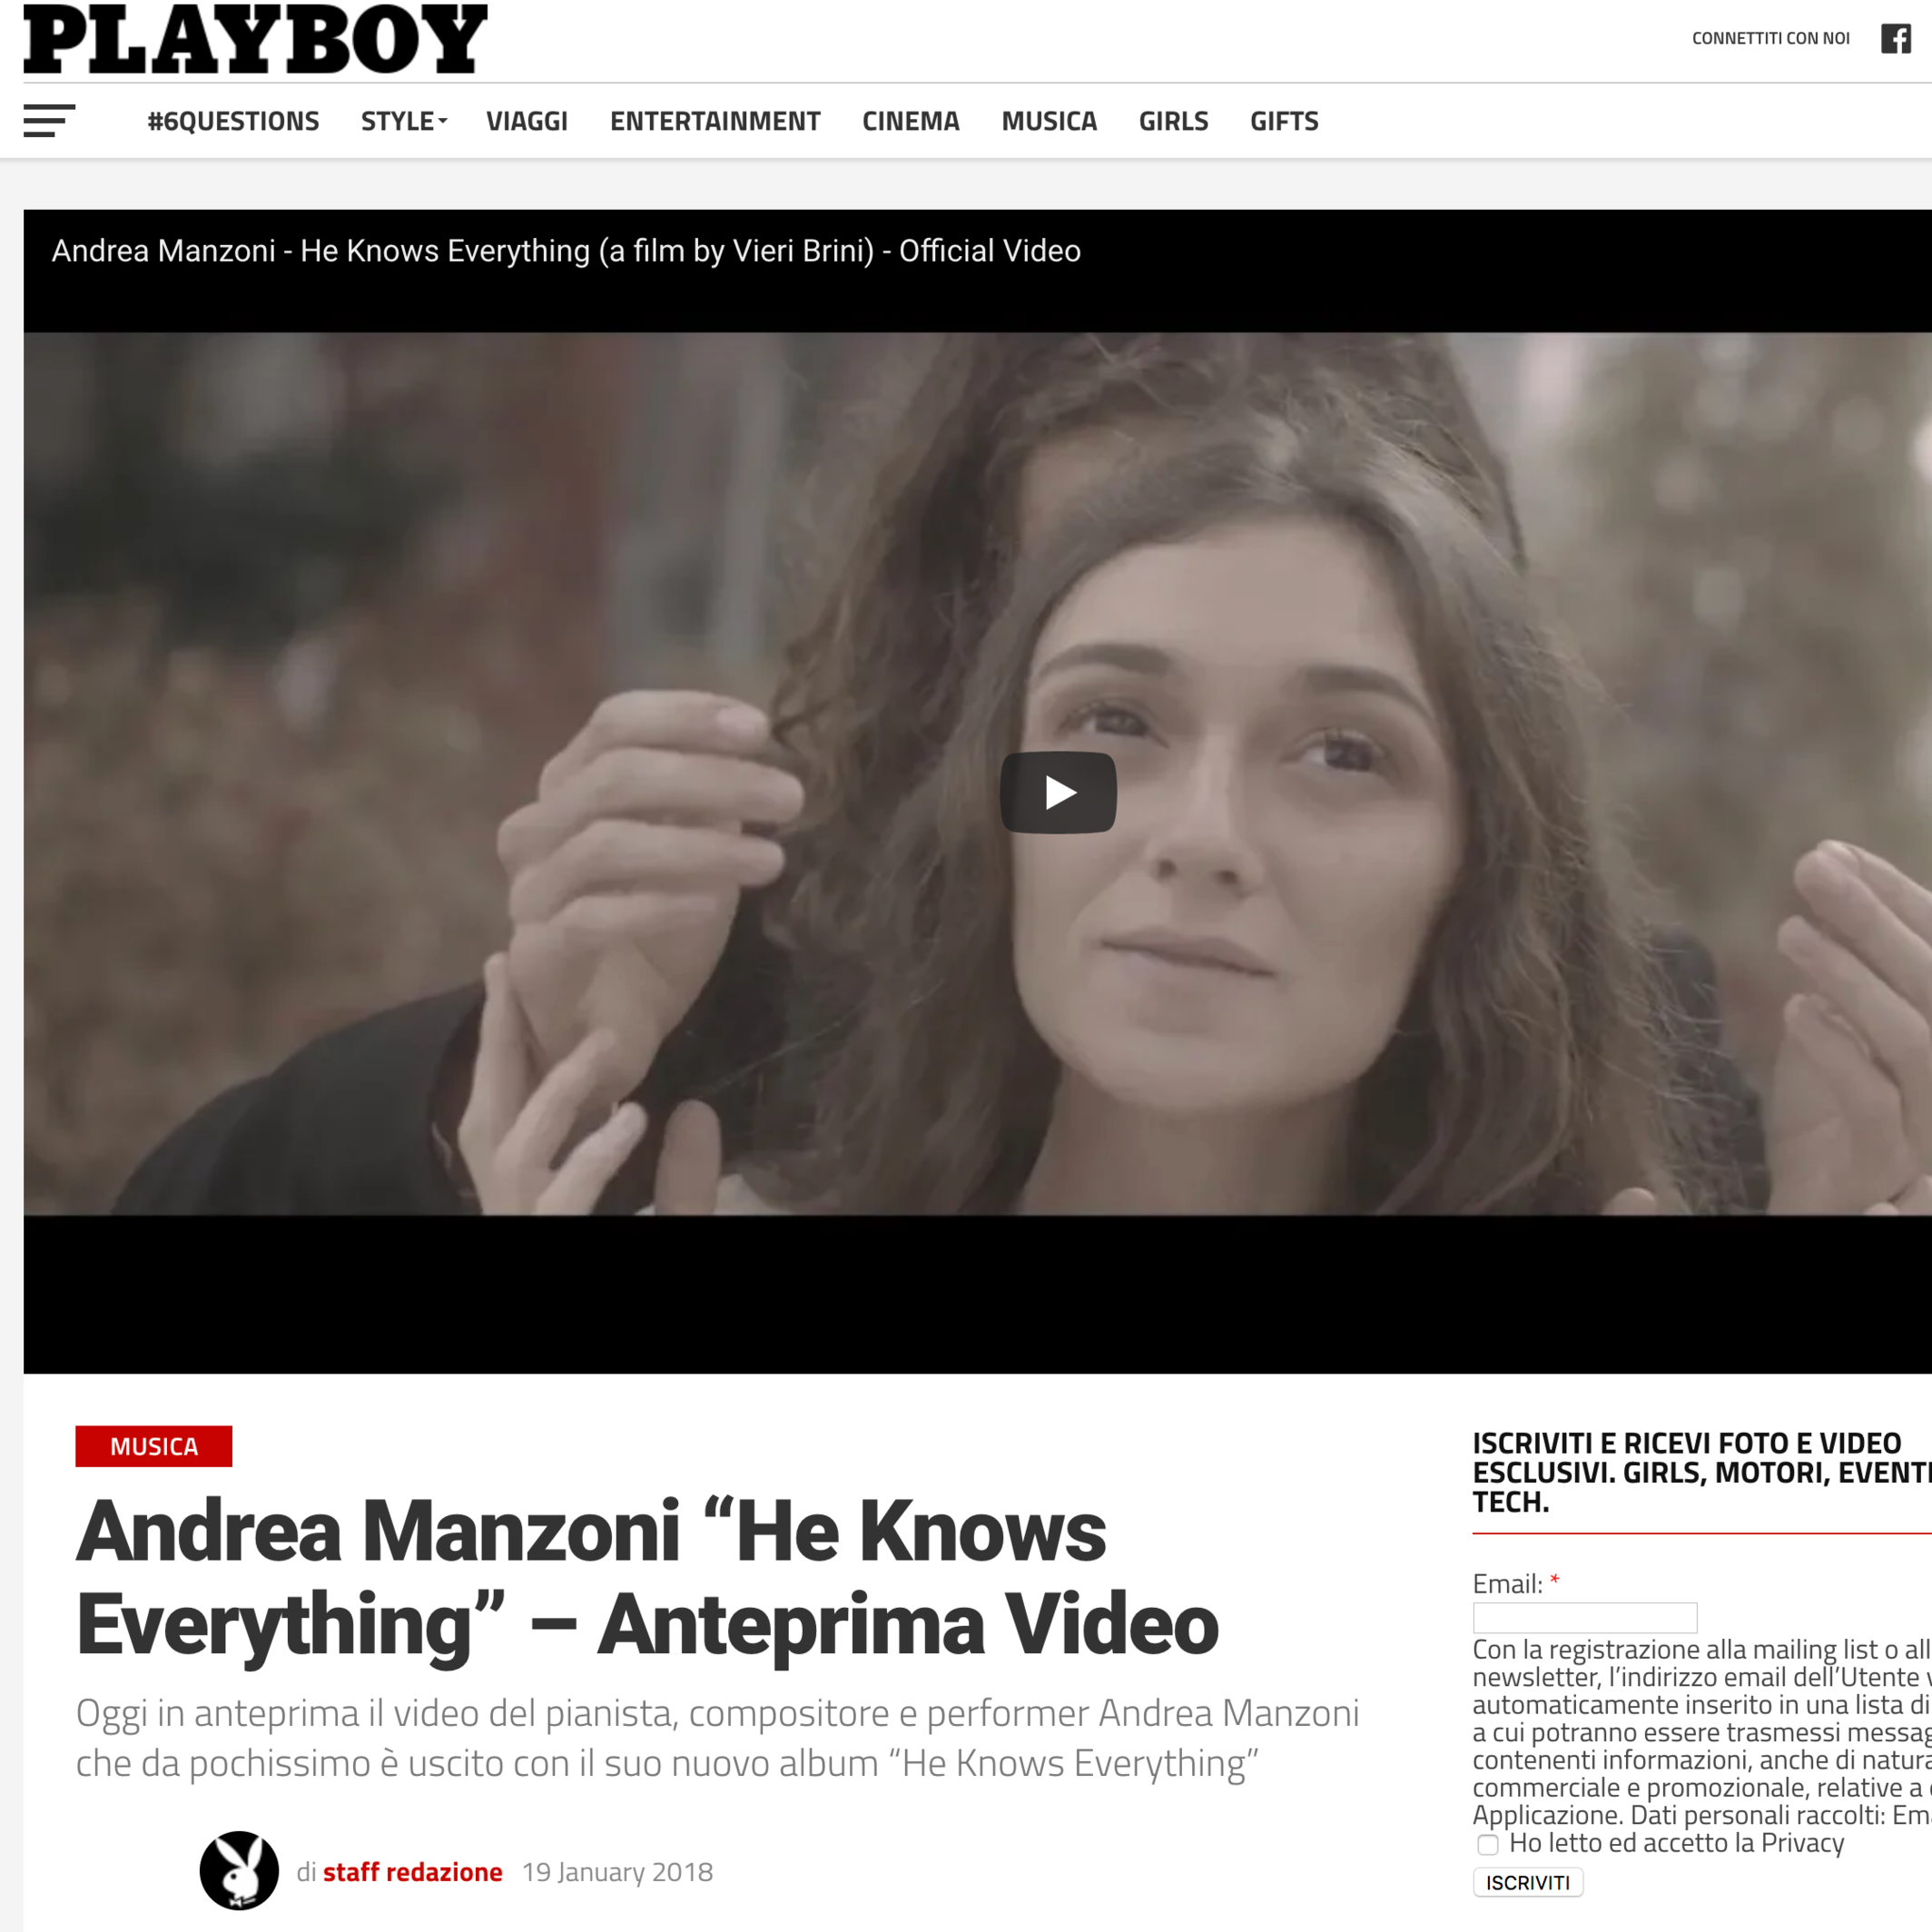 """Preview on PlayBoy Magazine - Andrea Manzoni """"He Knows Everything"""""""